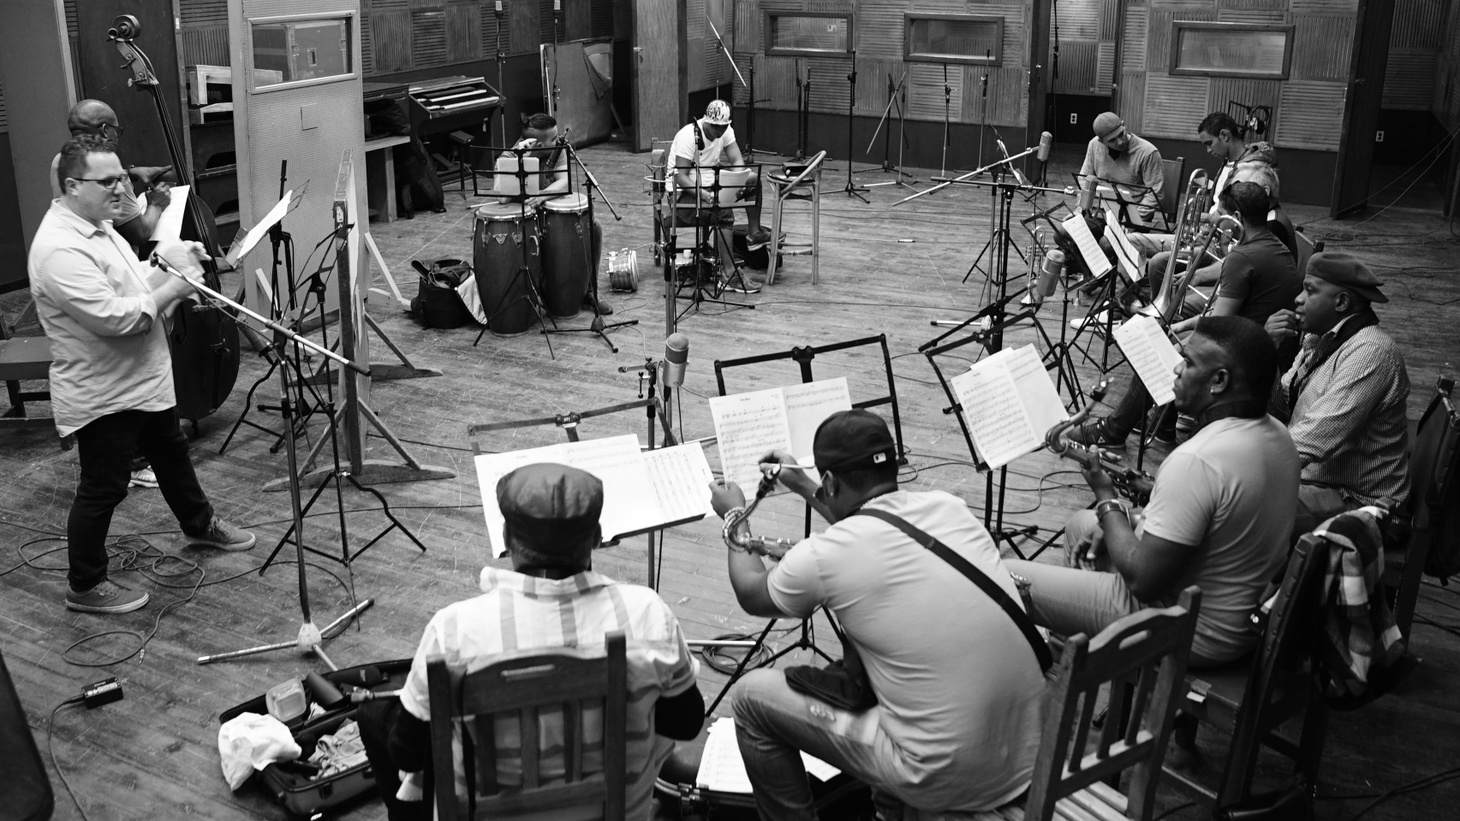 When Daptone Records decided to record their first Spanish language album, they went to Cuba where they set up a 16-piece orchestra featuring some of Havana's finest musicians. Orquesta Akokán evokes the sound of classical big bands like Perez…